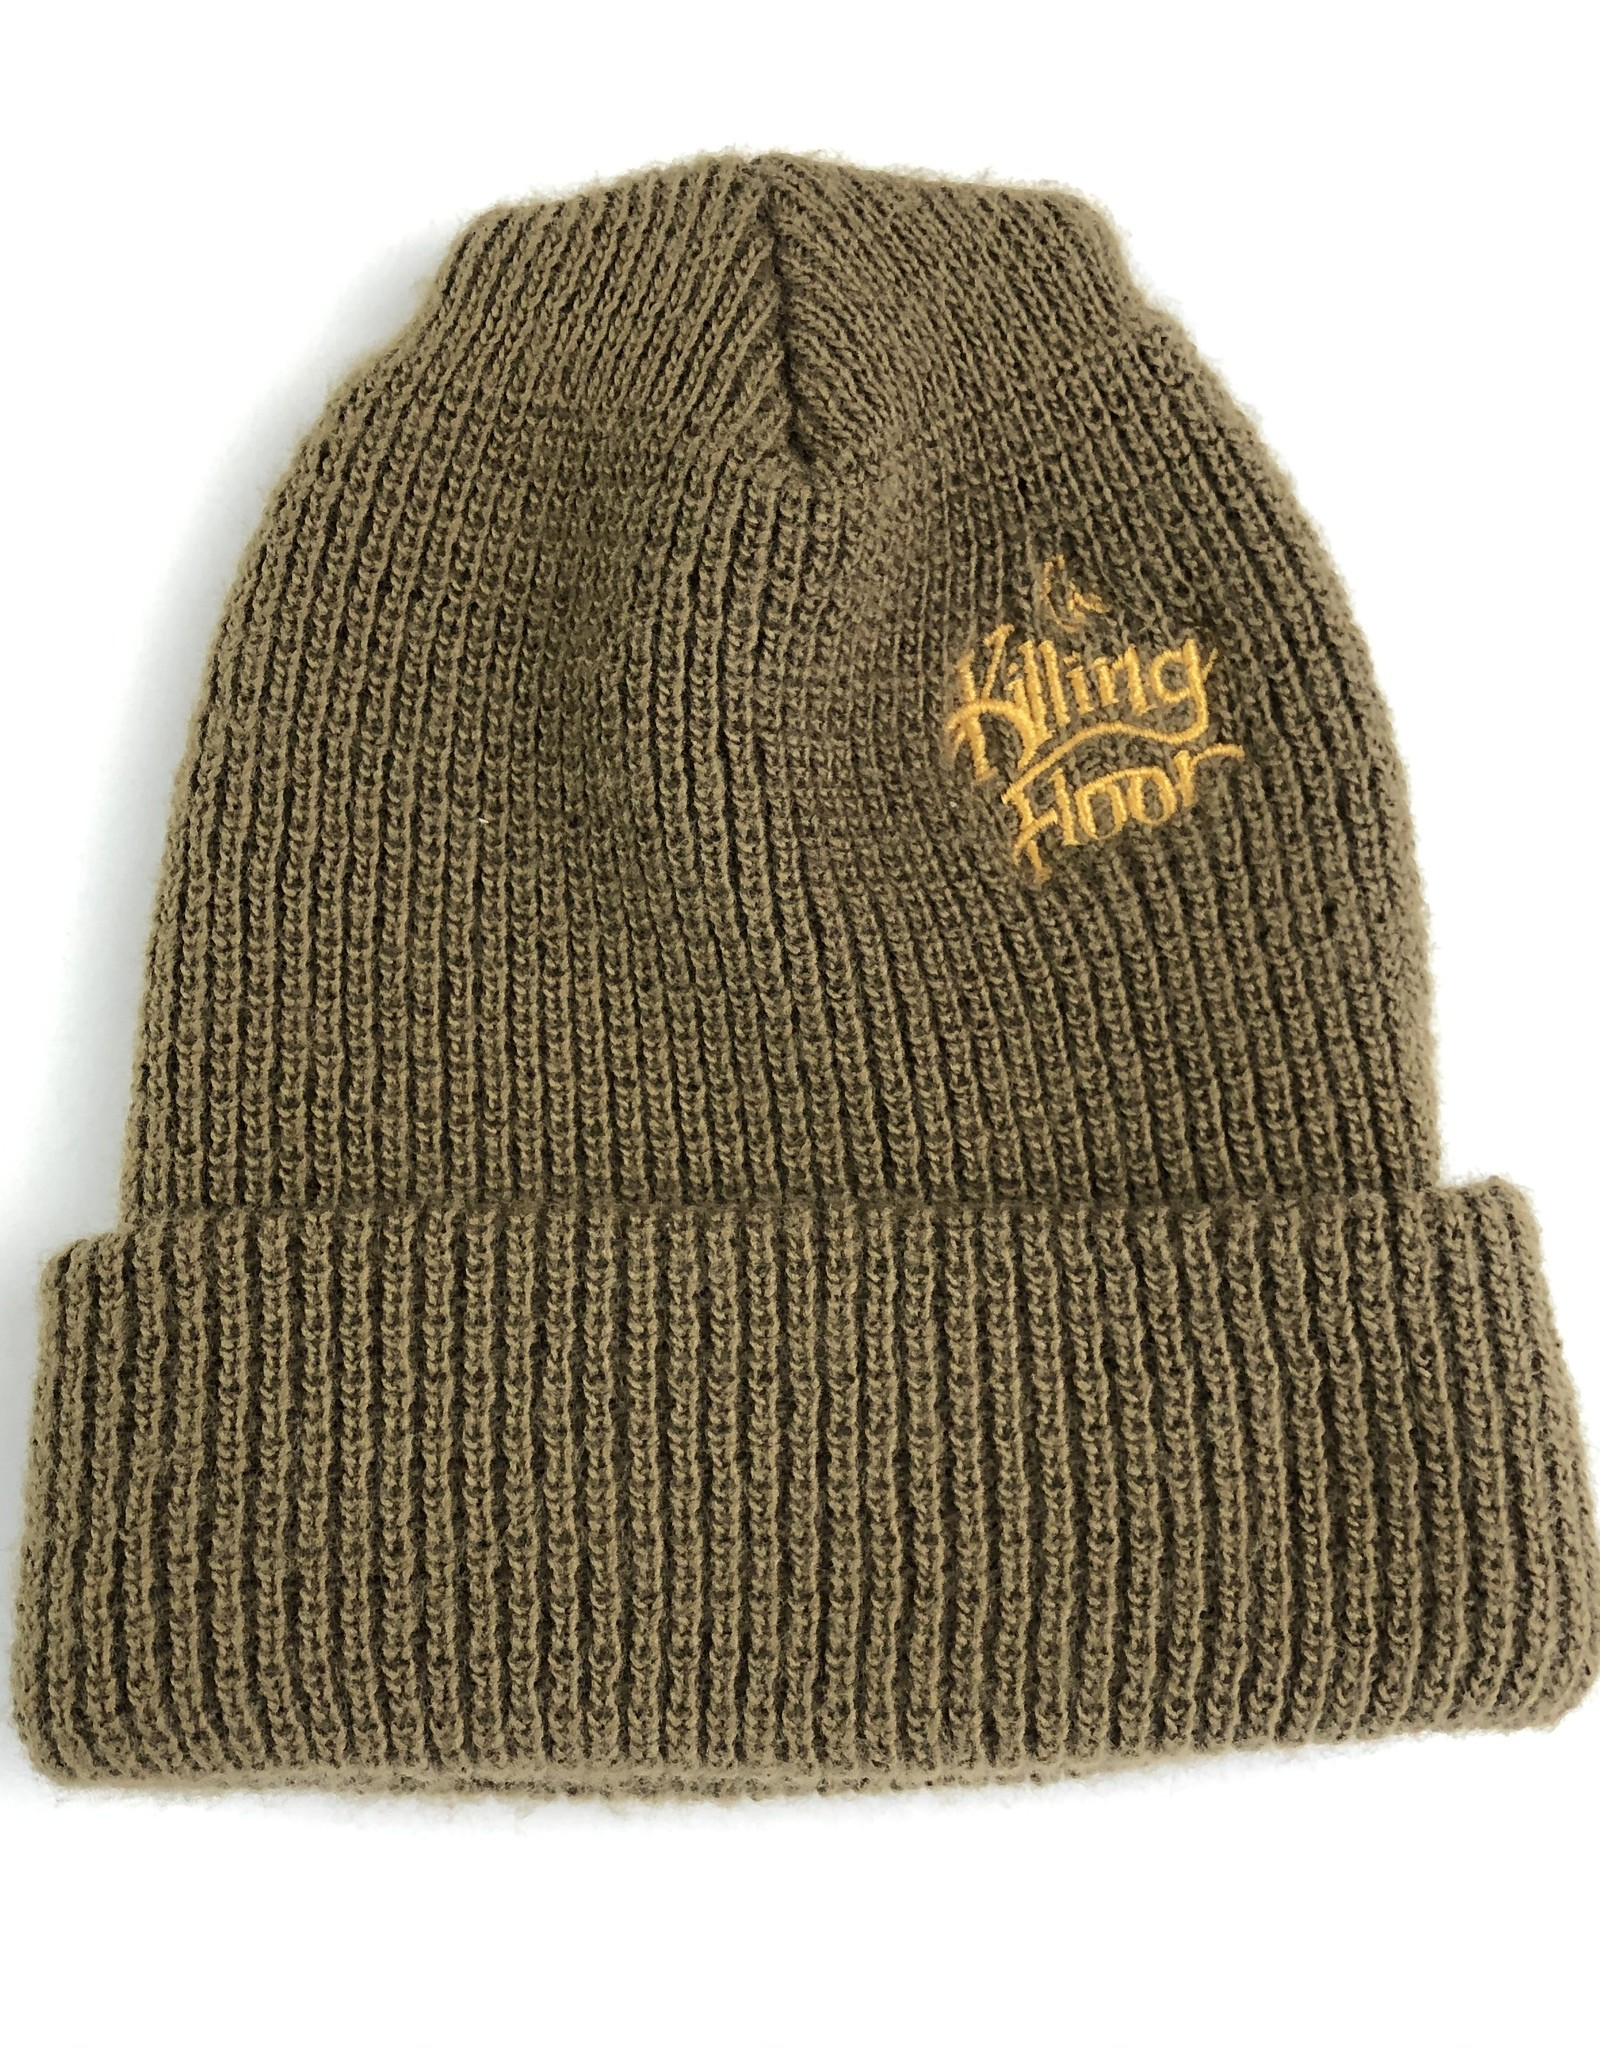 THE KILLING FLOOR WATCHCAP BEANIE - (ALL COLORS)